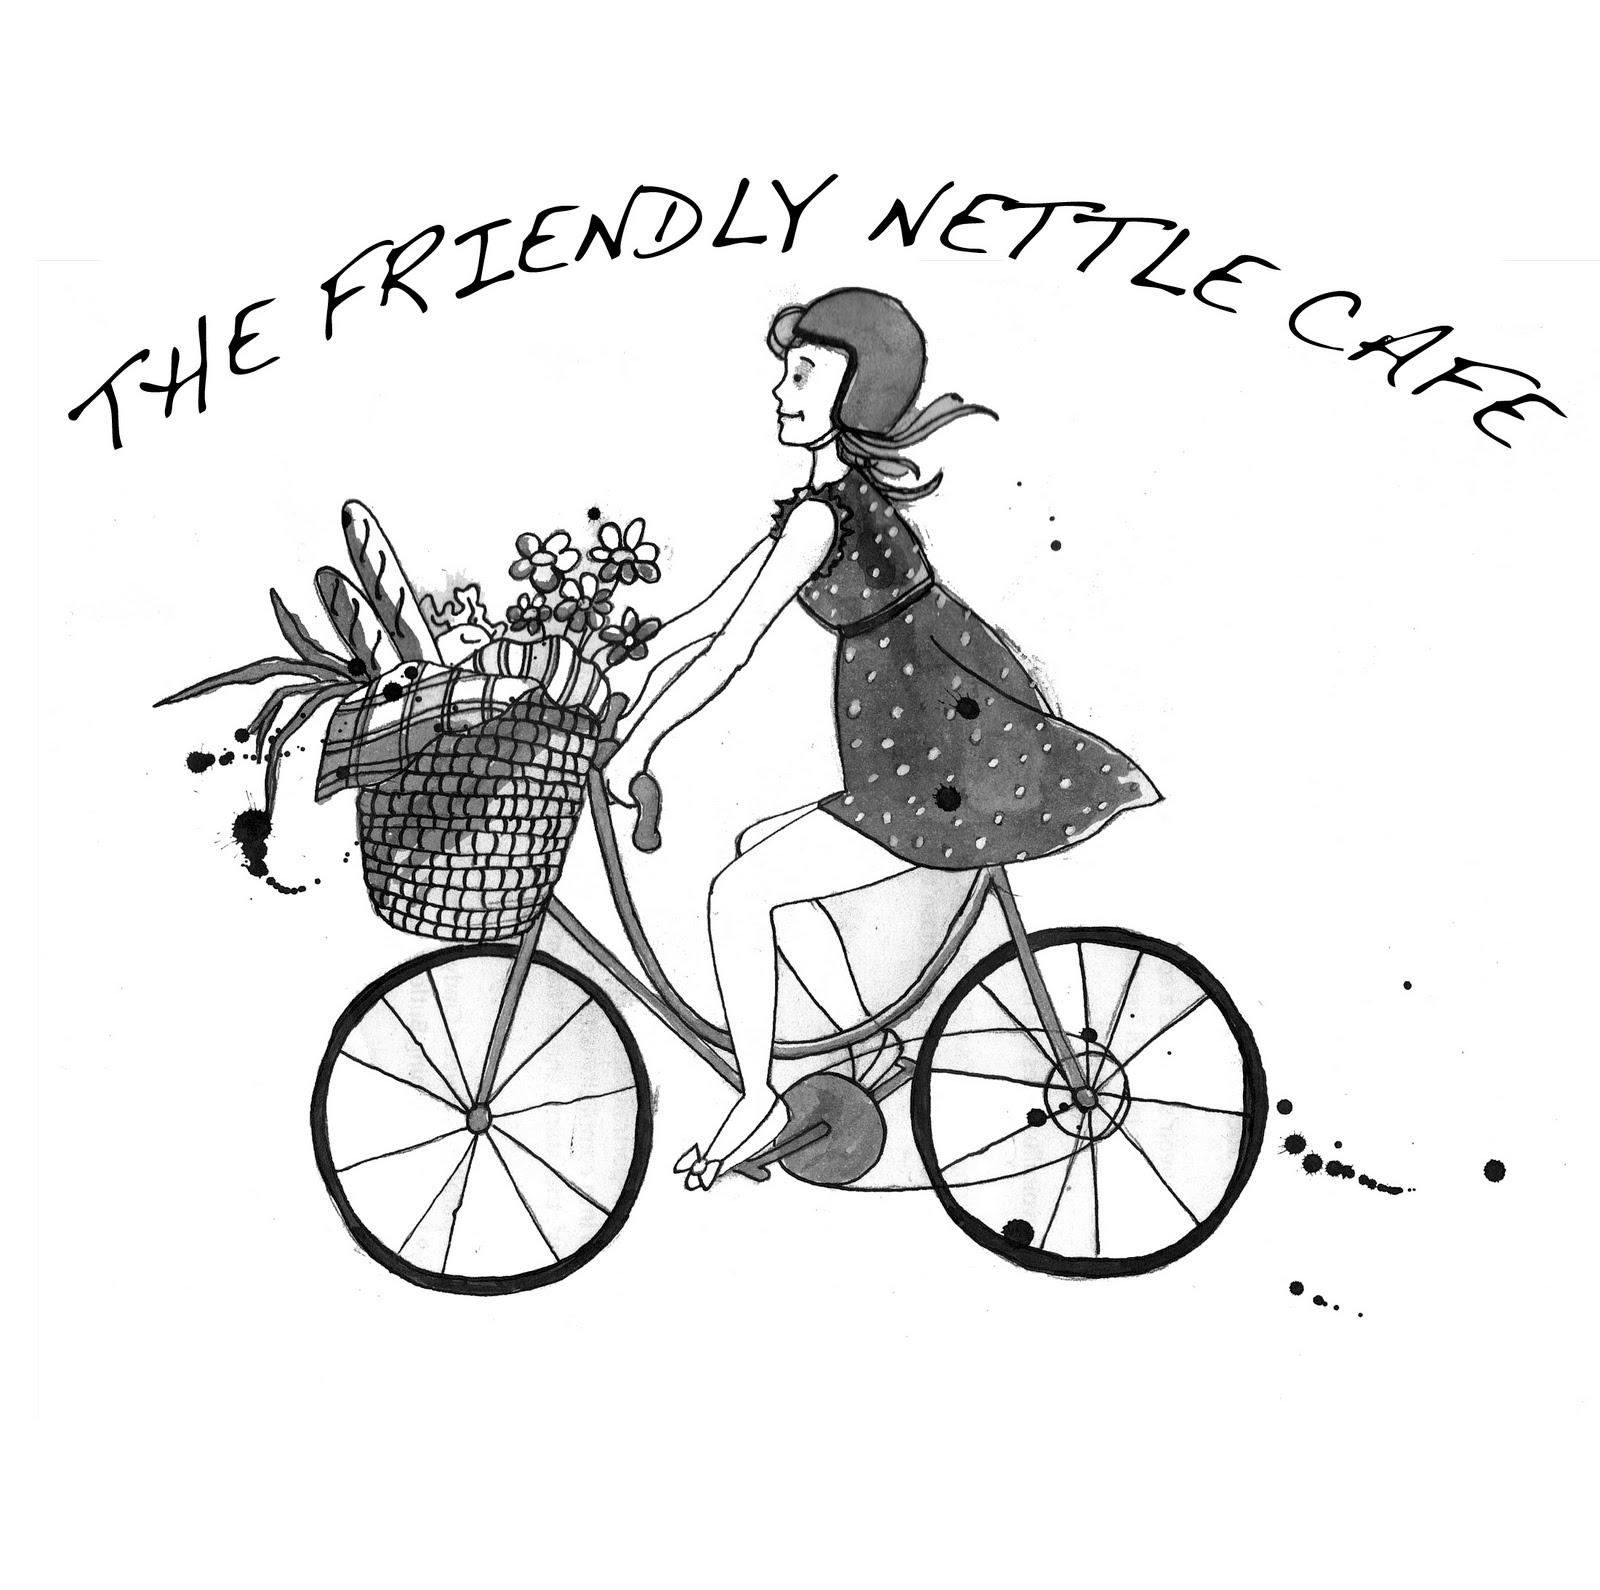 The Friendly Nettle